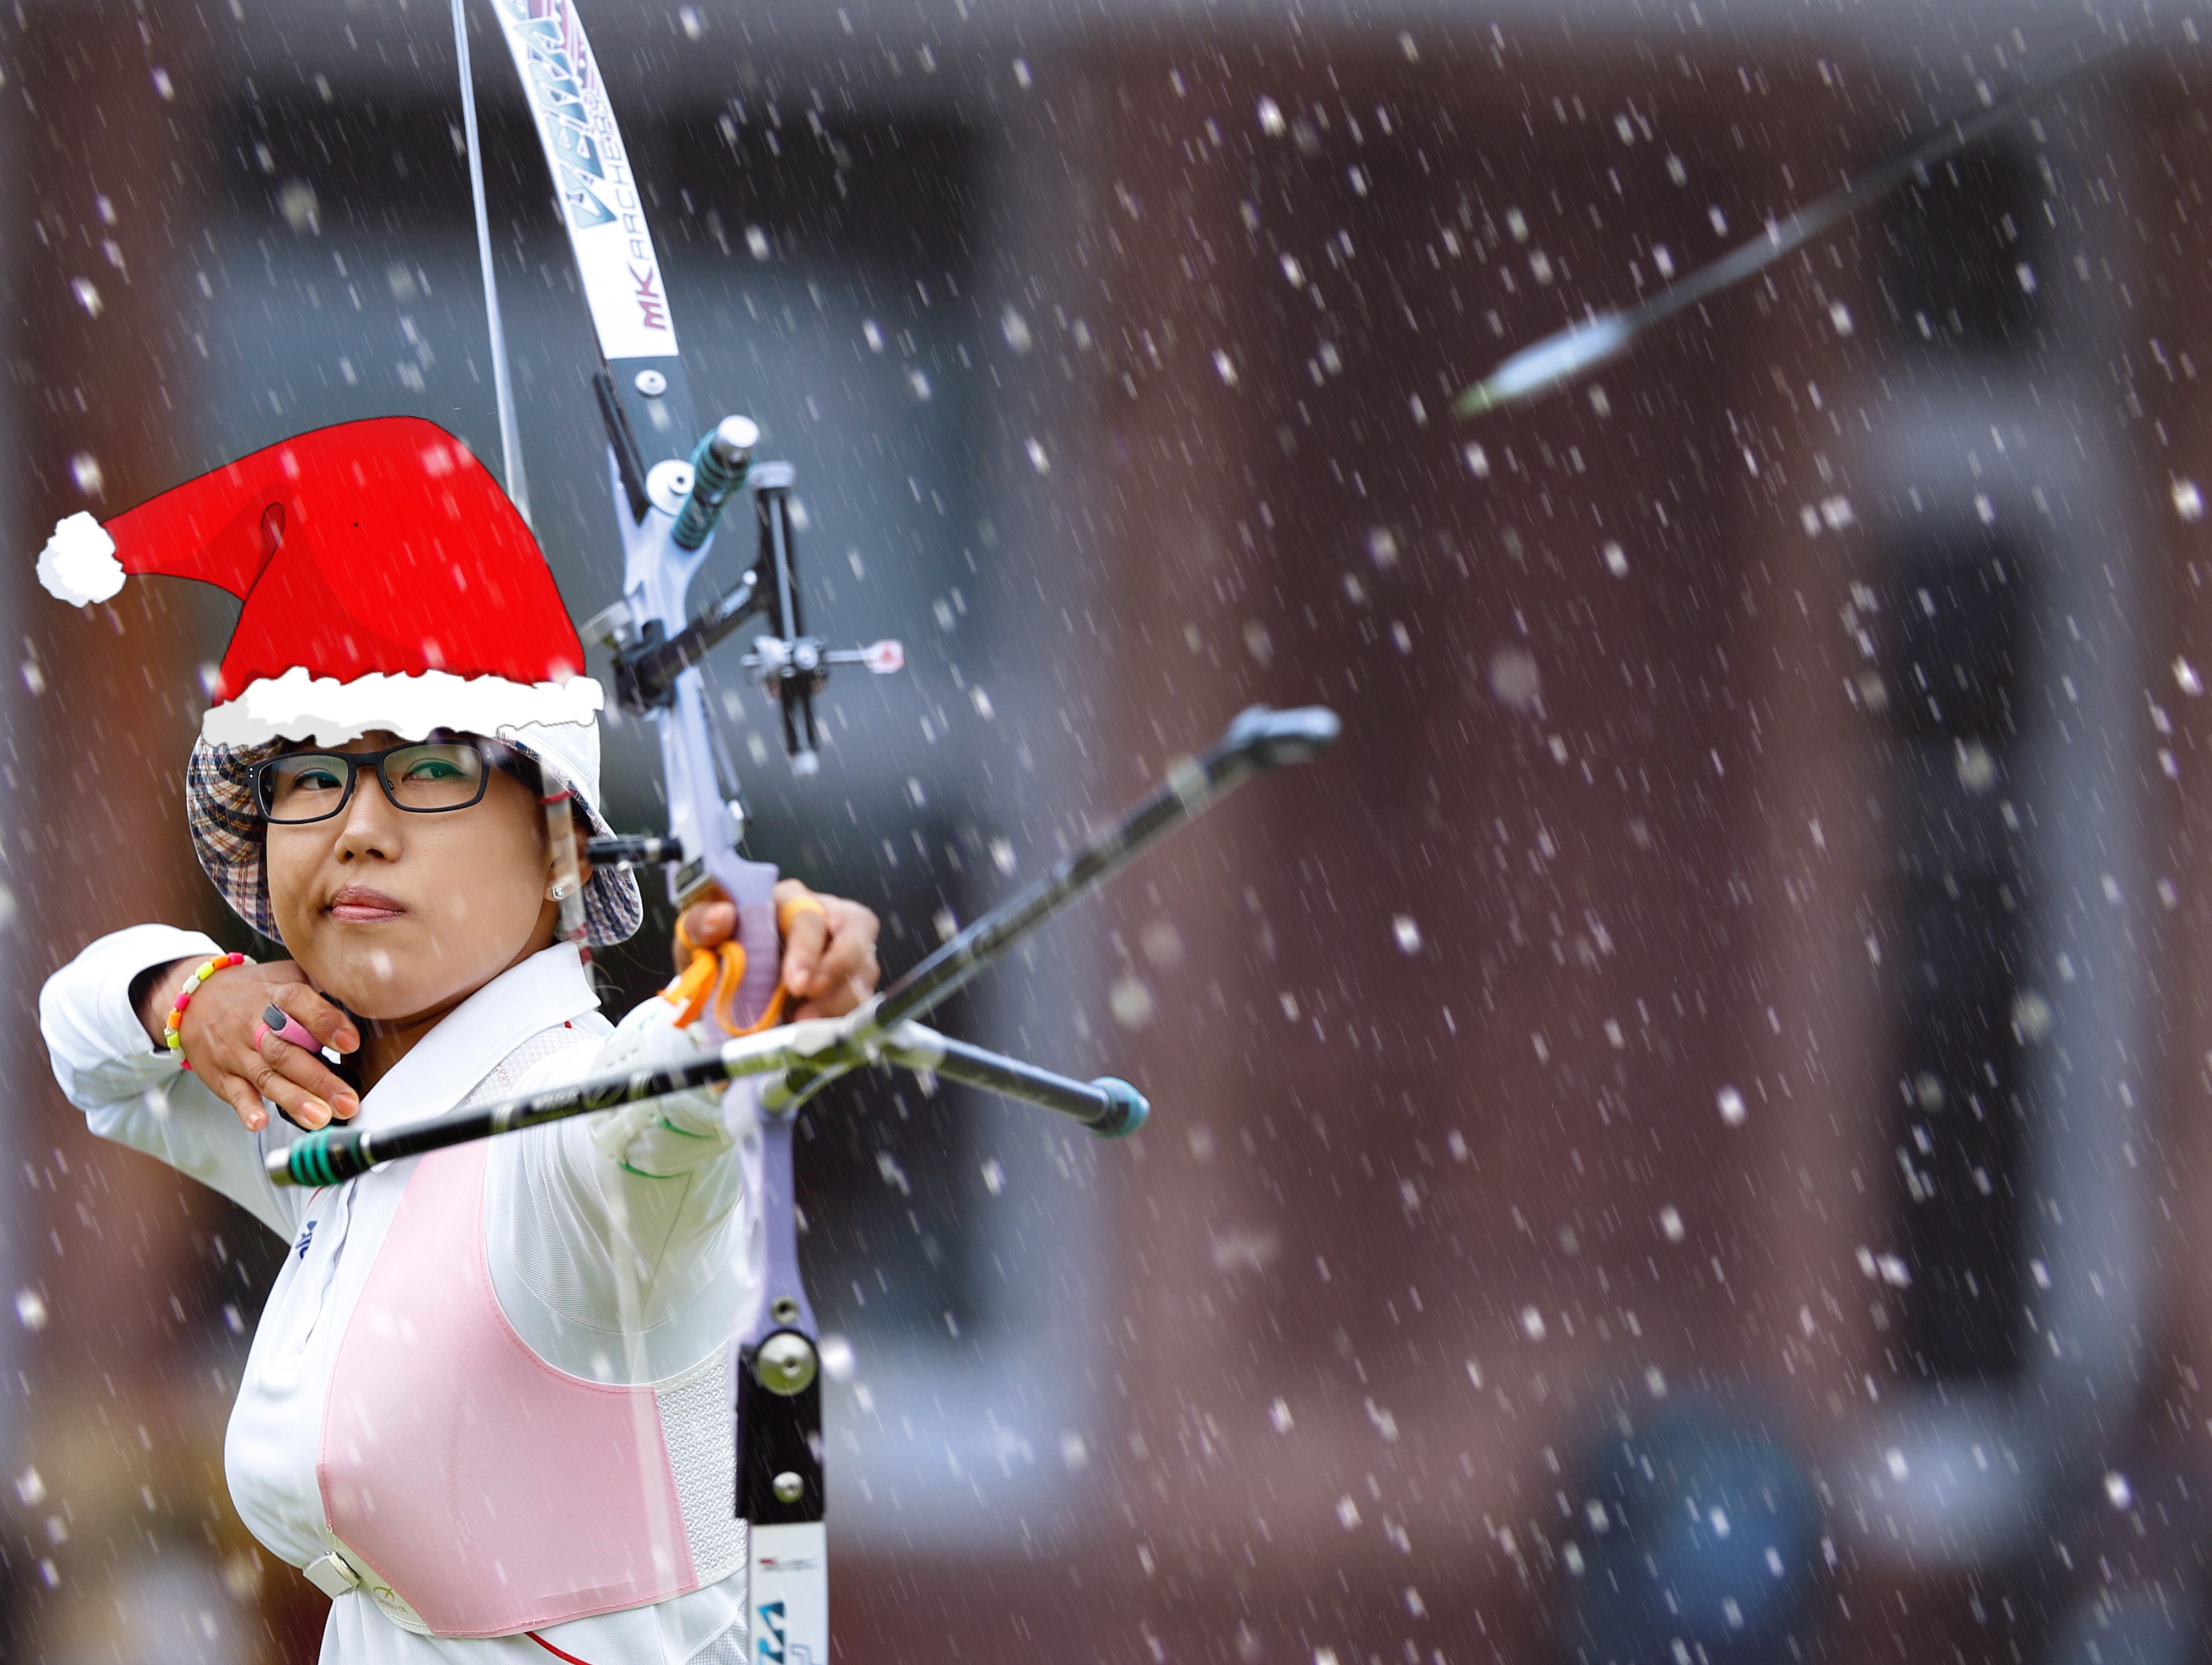 Archery - Christmas Gifts for Archers - The Infinite Curve